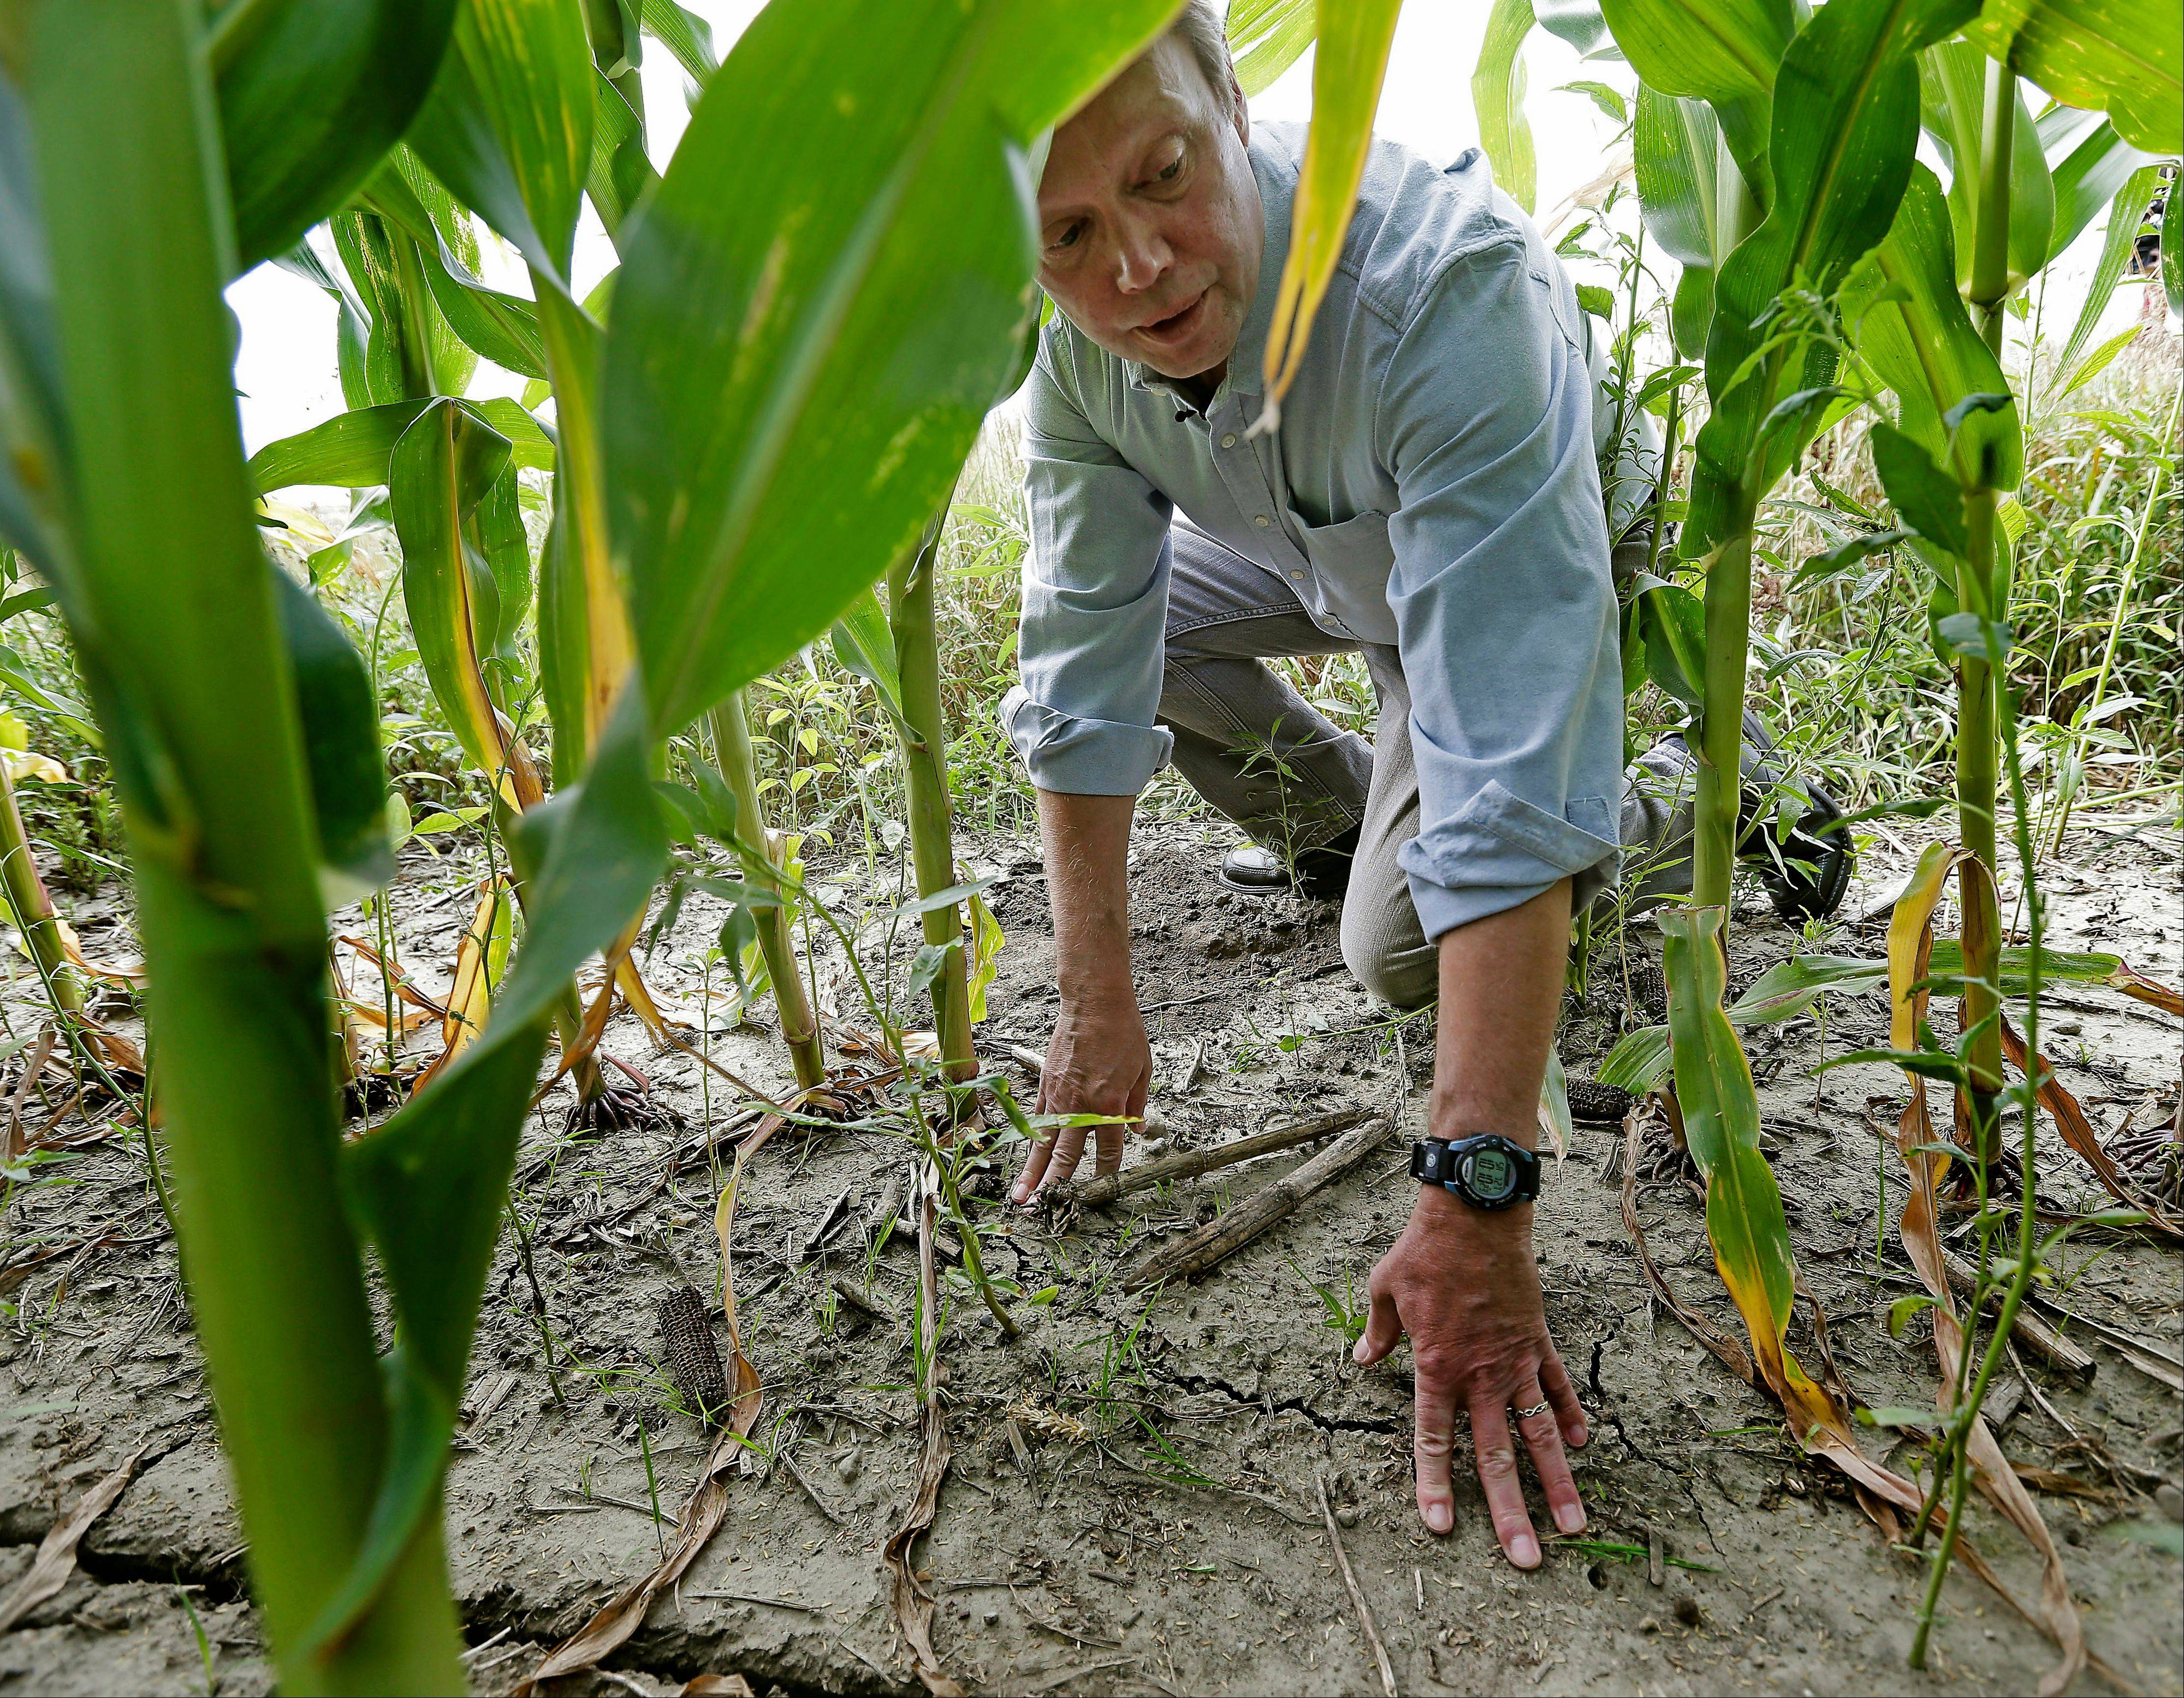 Environmentalist Craig Cox looks at a corn field near Ames, Iowa. The government's predictions of ethanol's benefits have proven so inaccurate that independent scientists question whether it will ever achieve its sole environmental goal: reducing greenhouse gases.